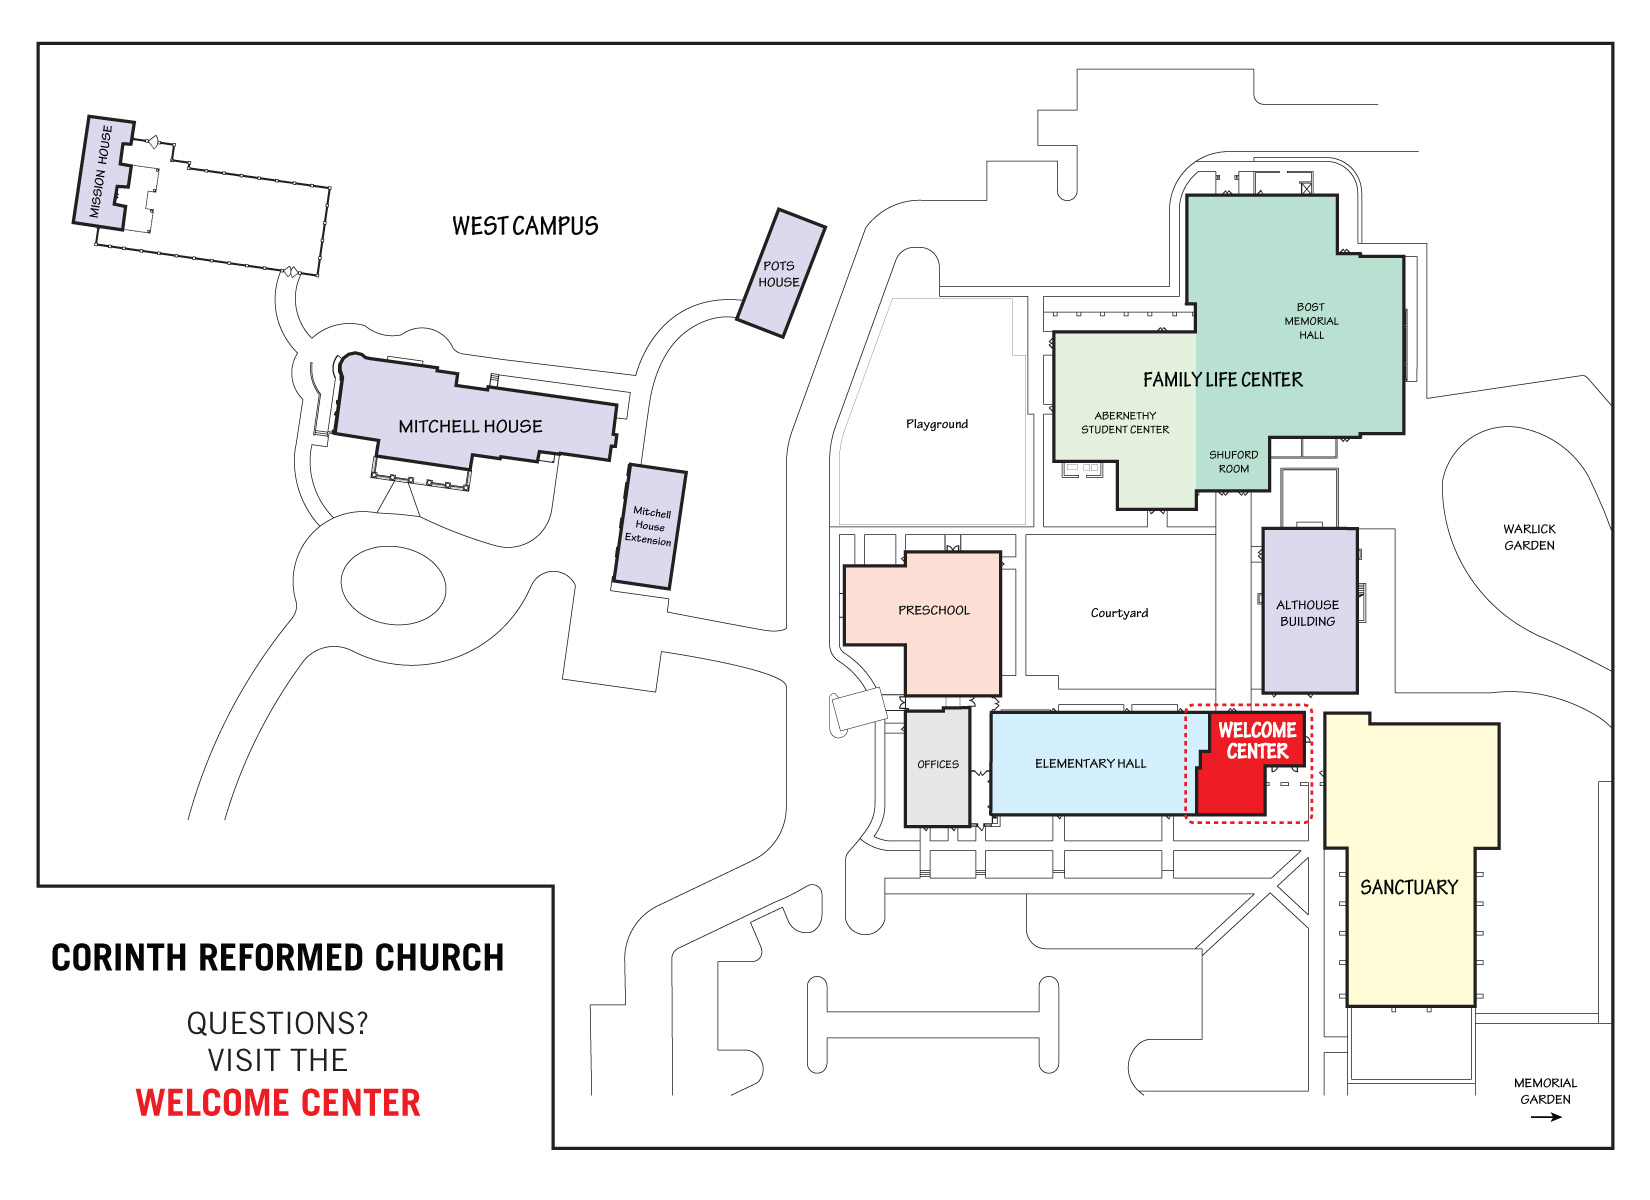 Campus Map – Corinth Reformed Church on uccs mascot, west wing map, colorado springs map, uccs colorado springs co, uccs clock tower, uccs student life, union county college cranford nj map, uccs dorms, uccs alpine village, uccs visitor parking, uccs dwire hall lssc, uccs university of colorado spring, national art gallery map, rochester new york airport map, university college cork ireland map, uccs mountain lions, uccs recreation center, uccs communication center, uccs soccer, uccs writing center,